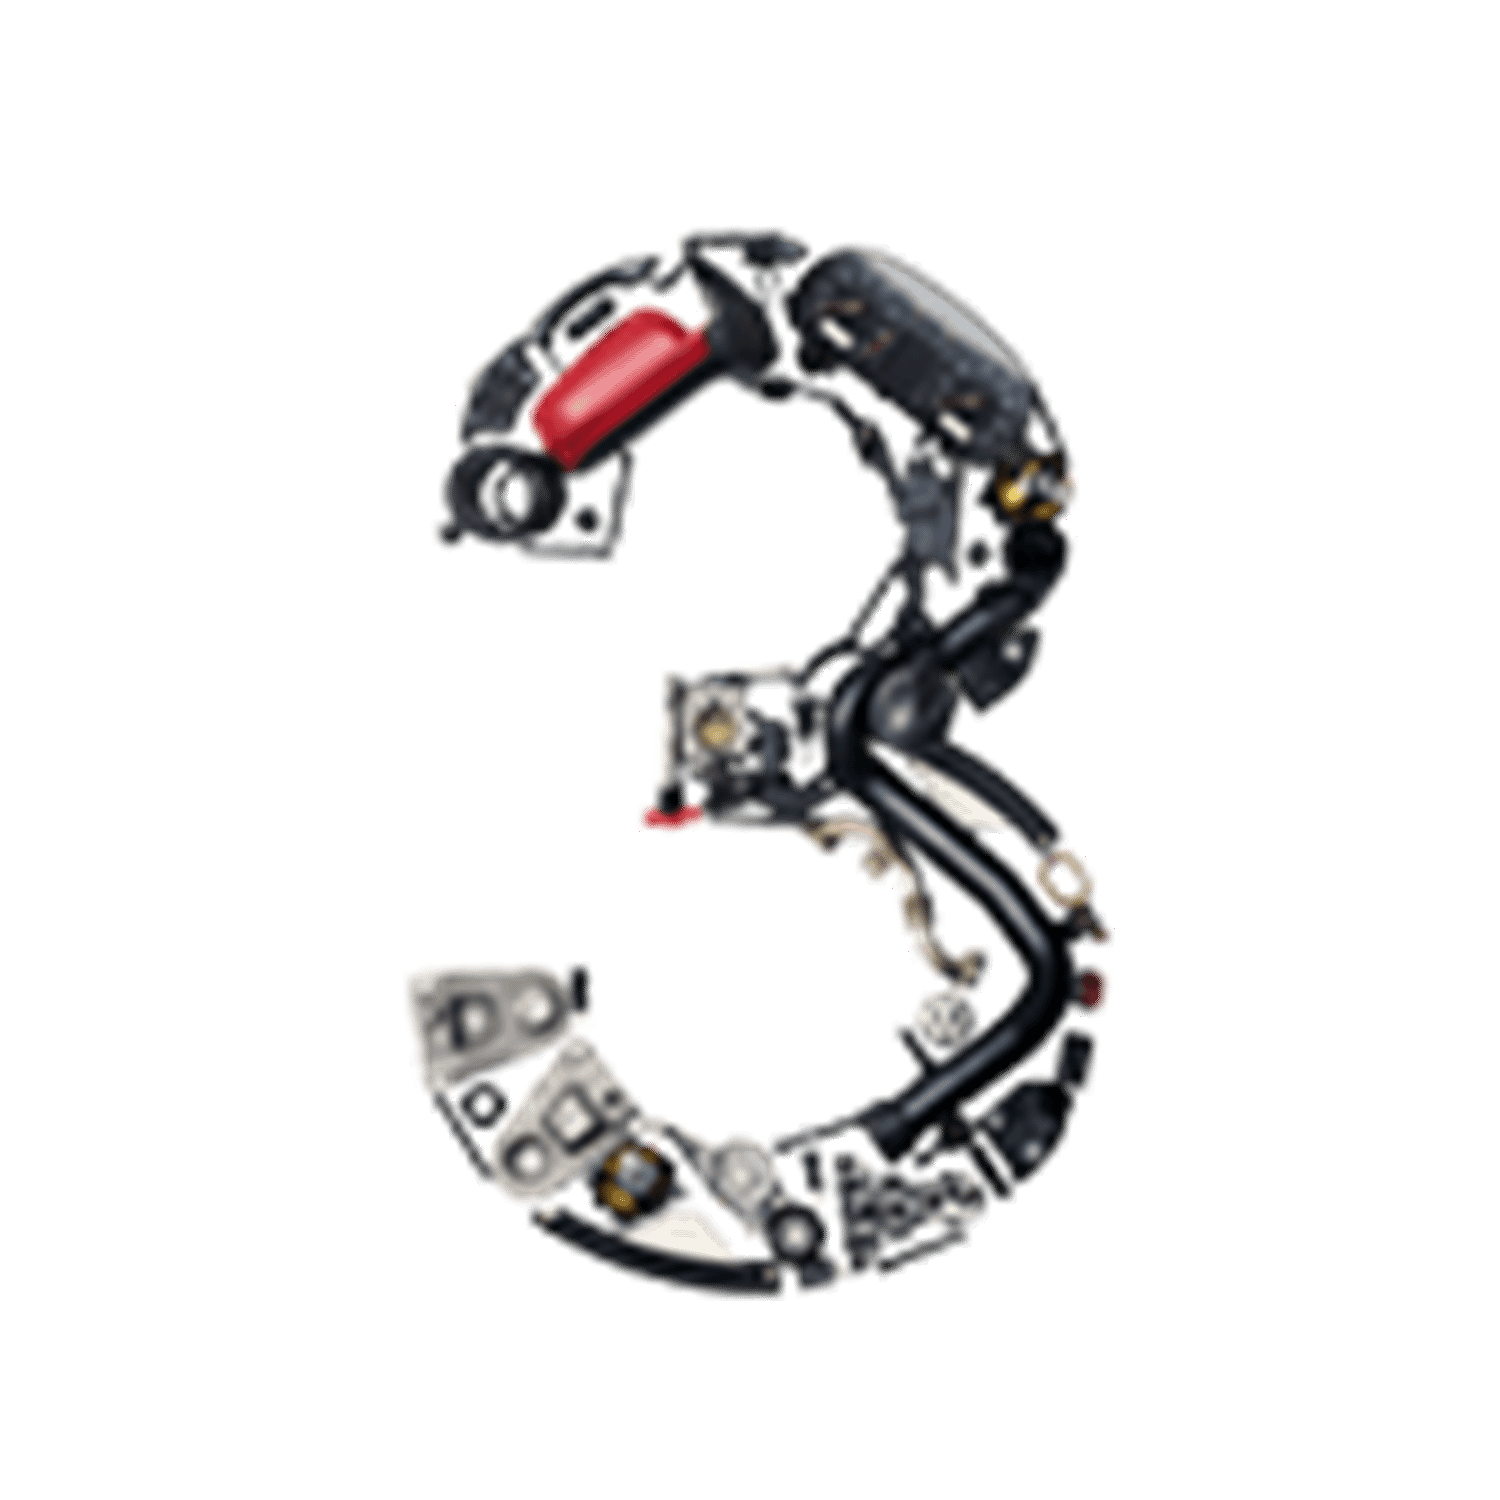 Number 3 made from car parts